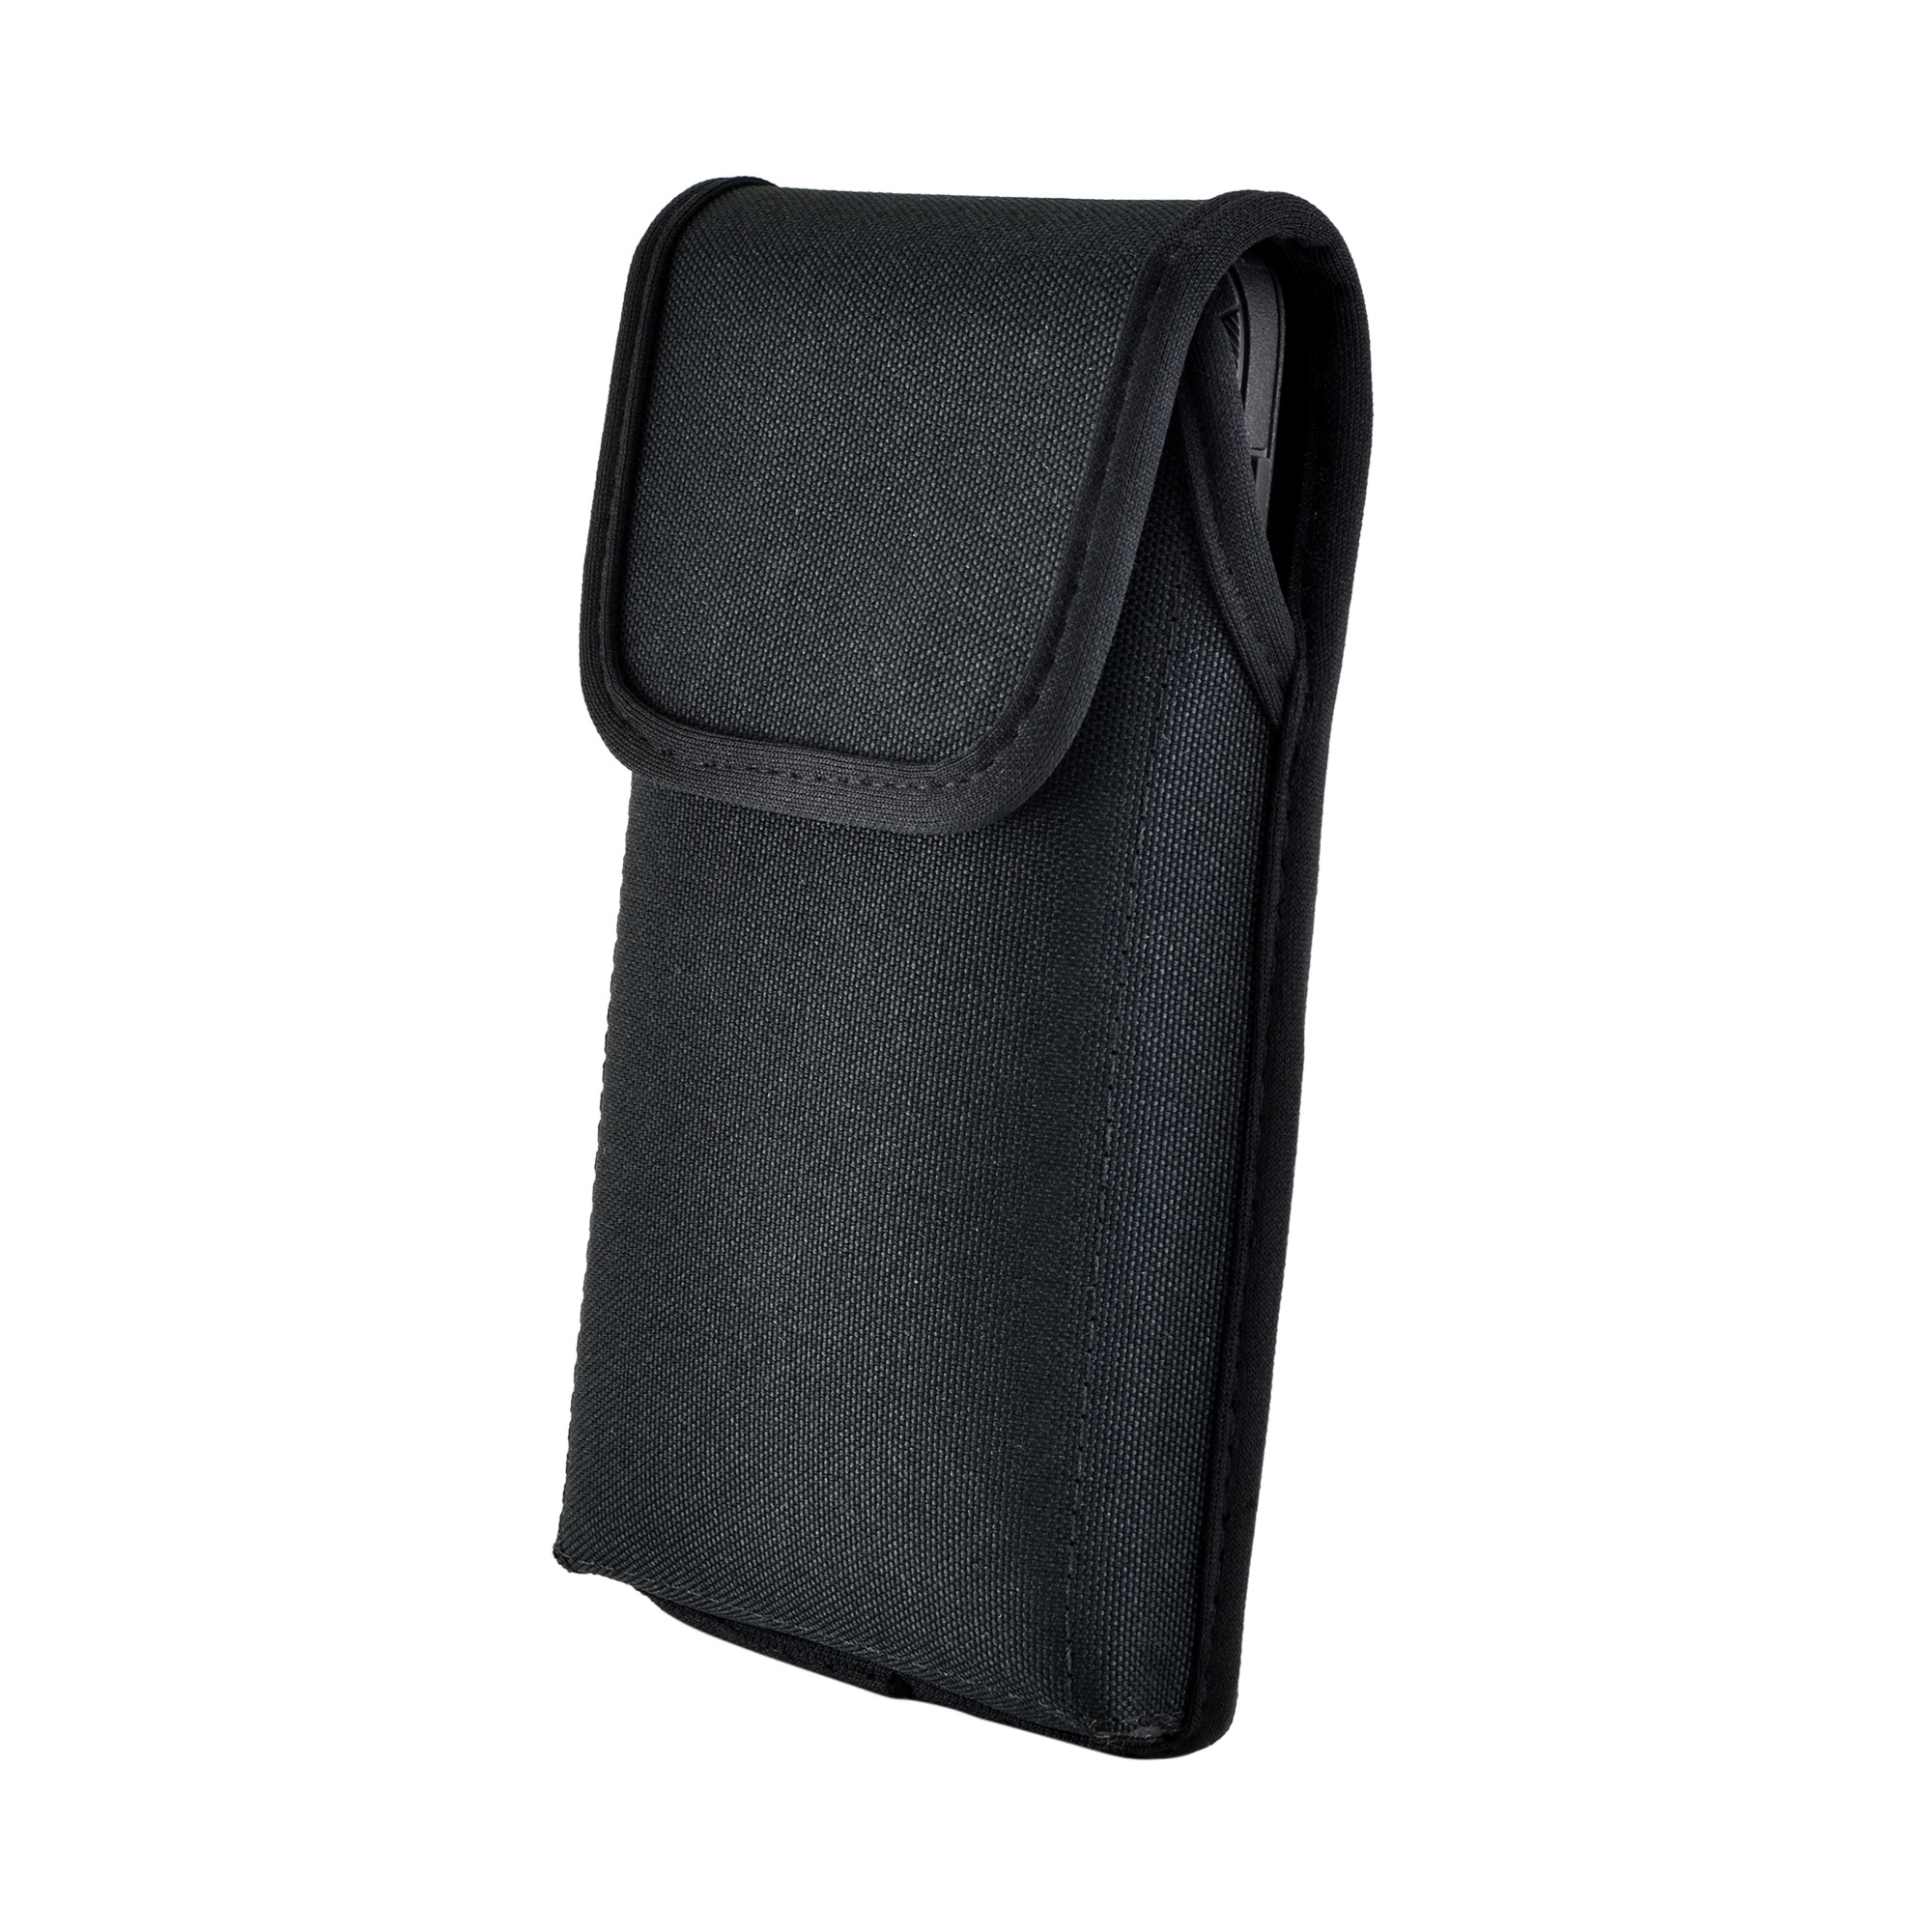 Black Nylon Pouch with Heavy Duty Rotating Belt Clip Made in USA Turtleback Vertical Galaxy S10 Holster Galaxy S10 Belt Clip Case